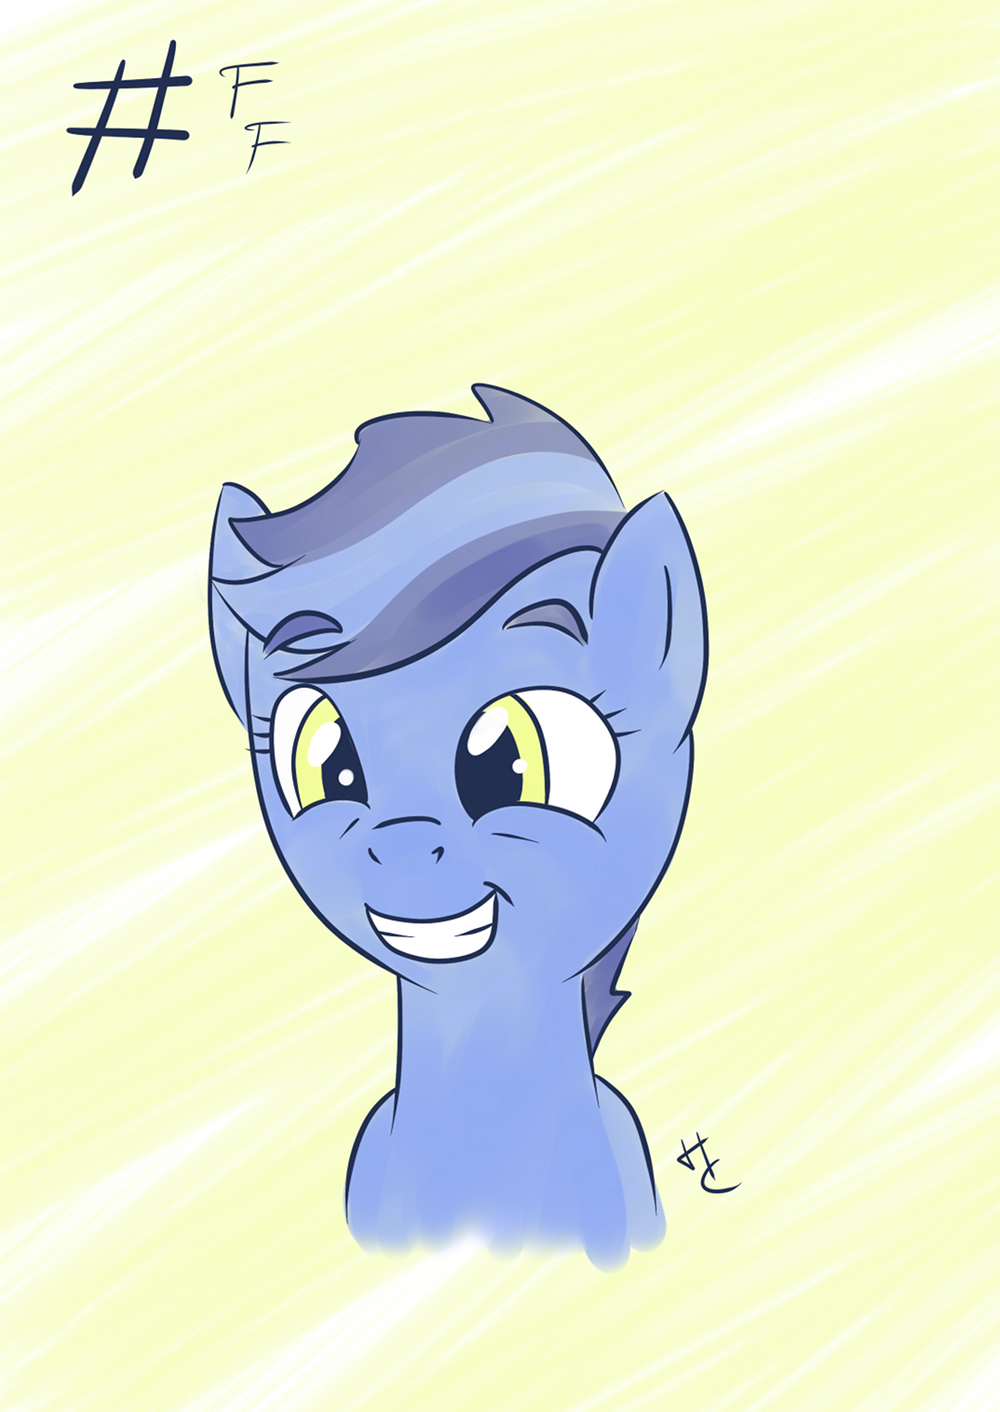 Follow Friday's squee face by HardCyder on deviantART